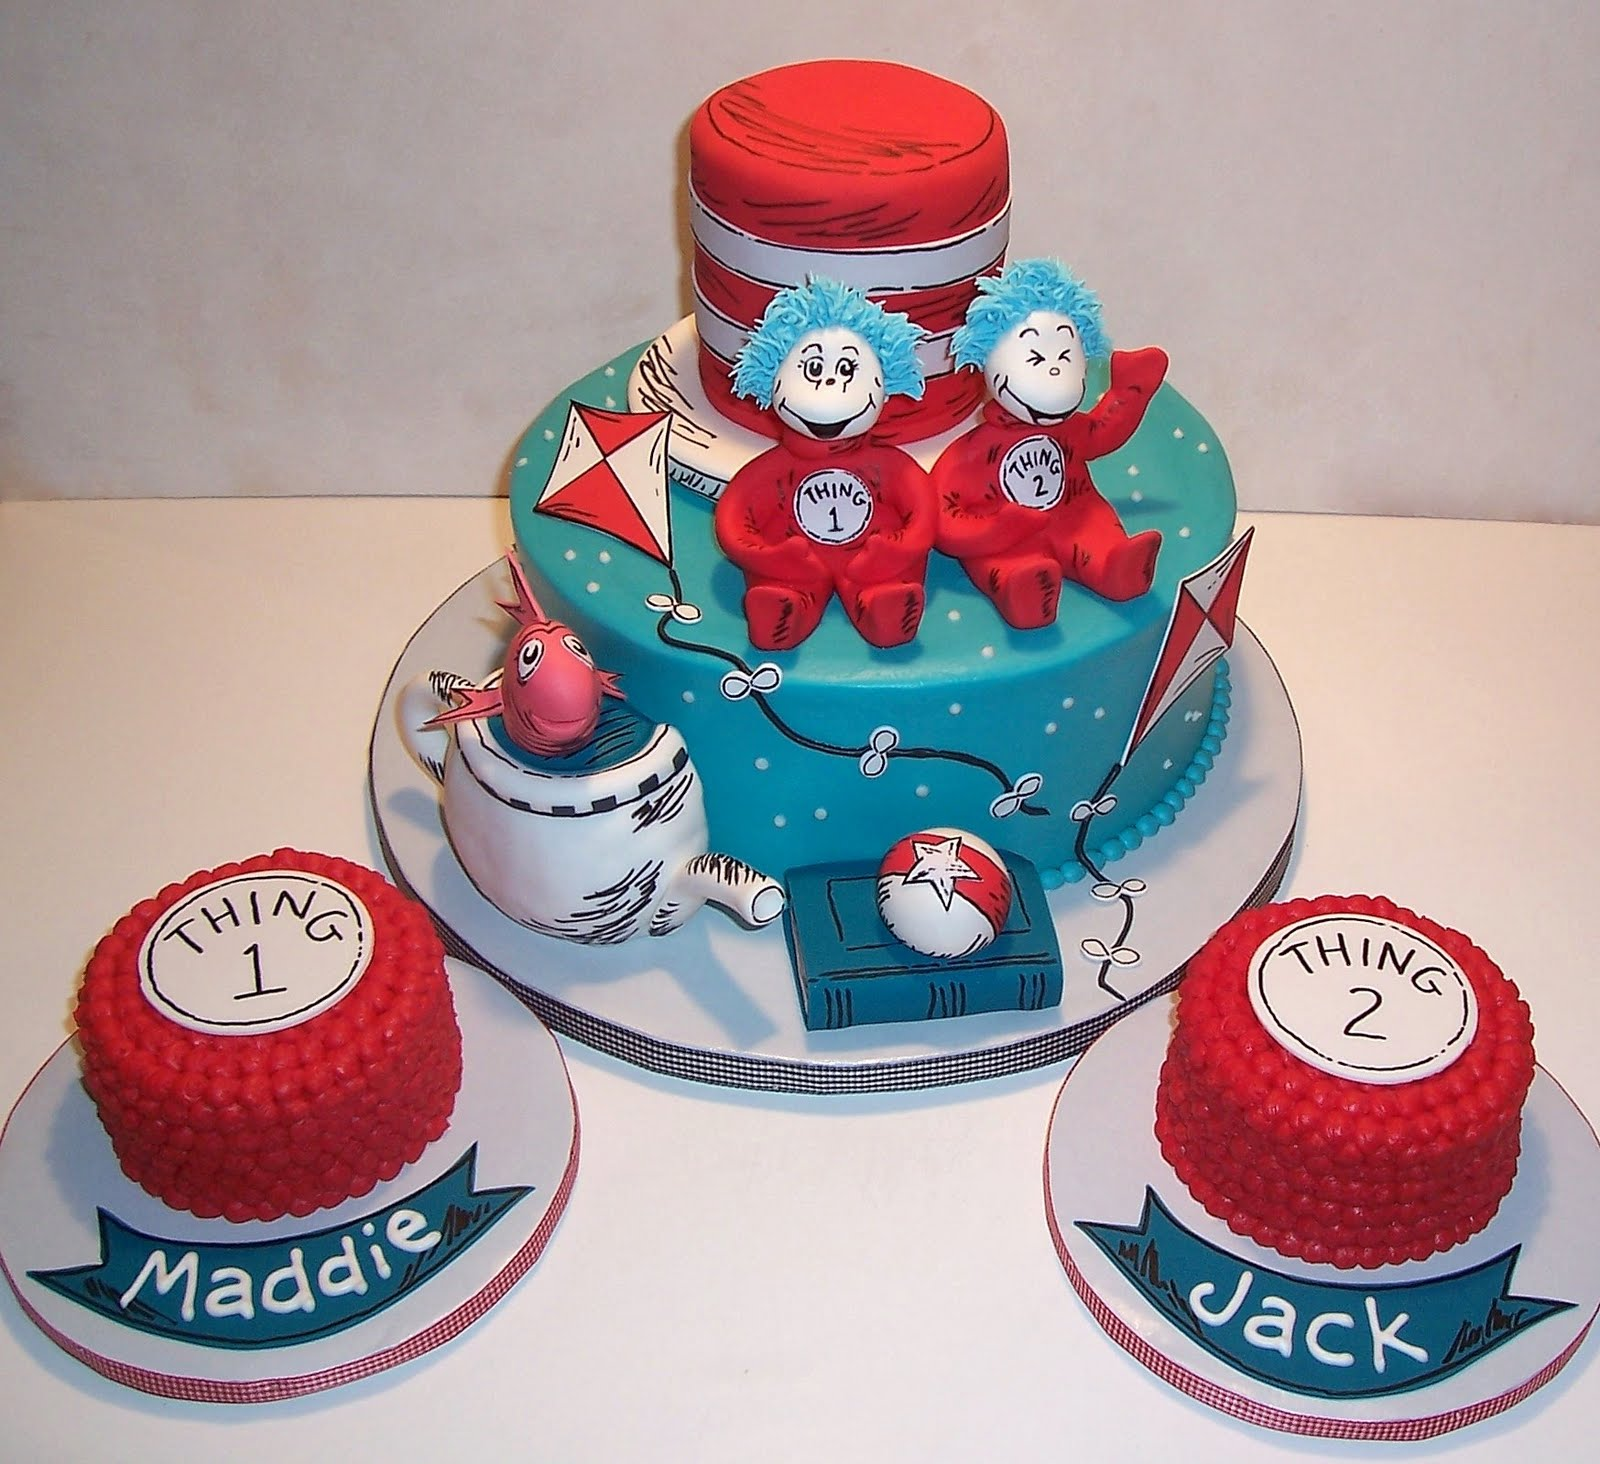 By Marj J Of The Icing On The Cake